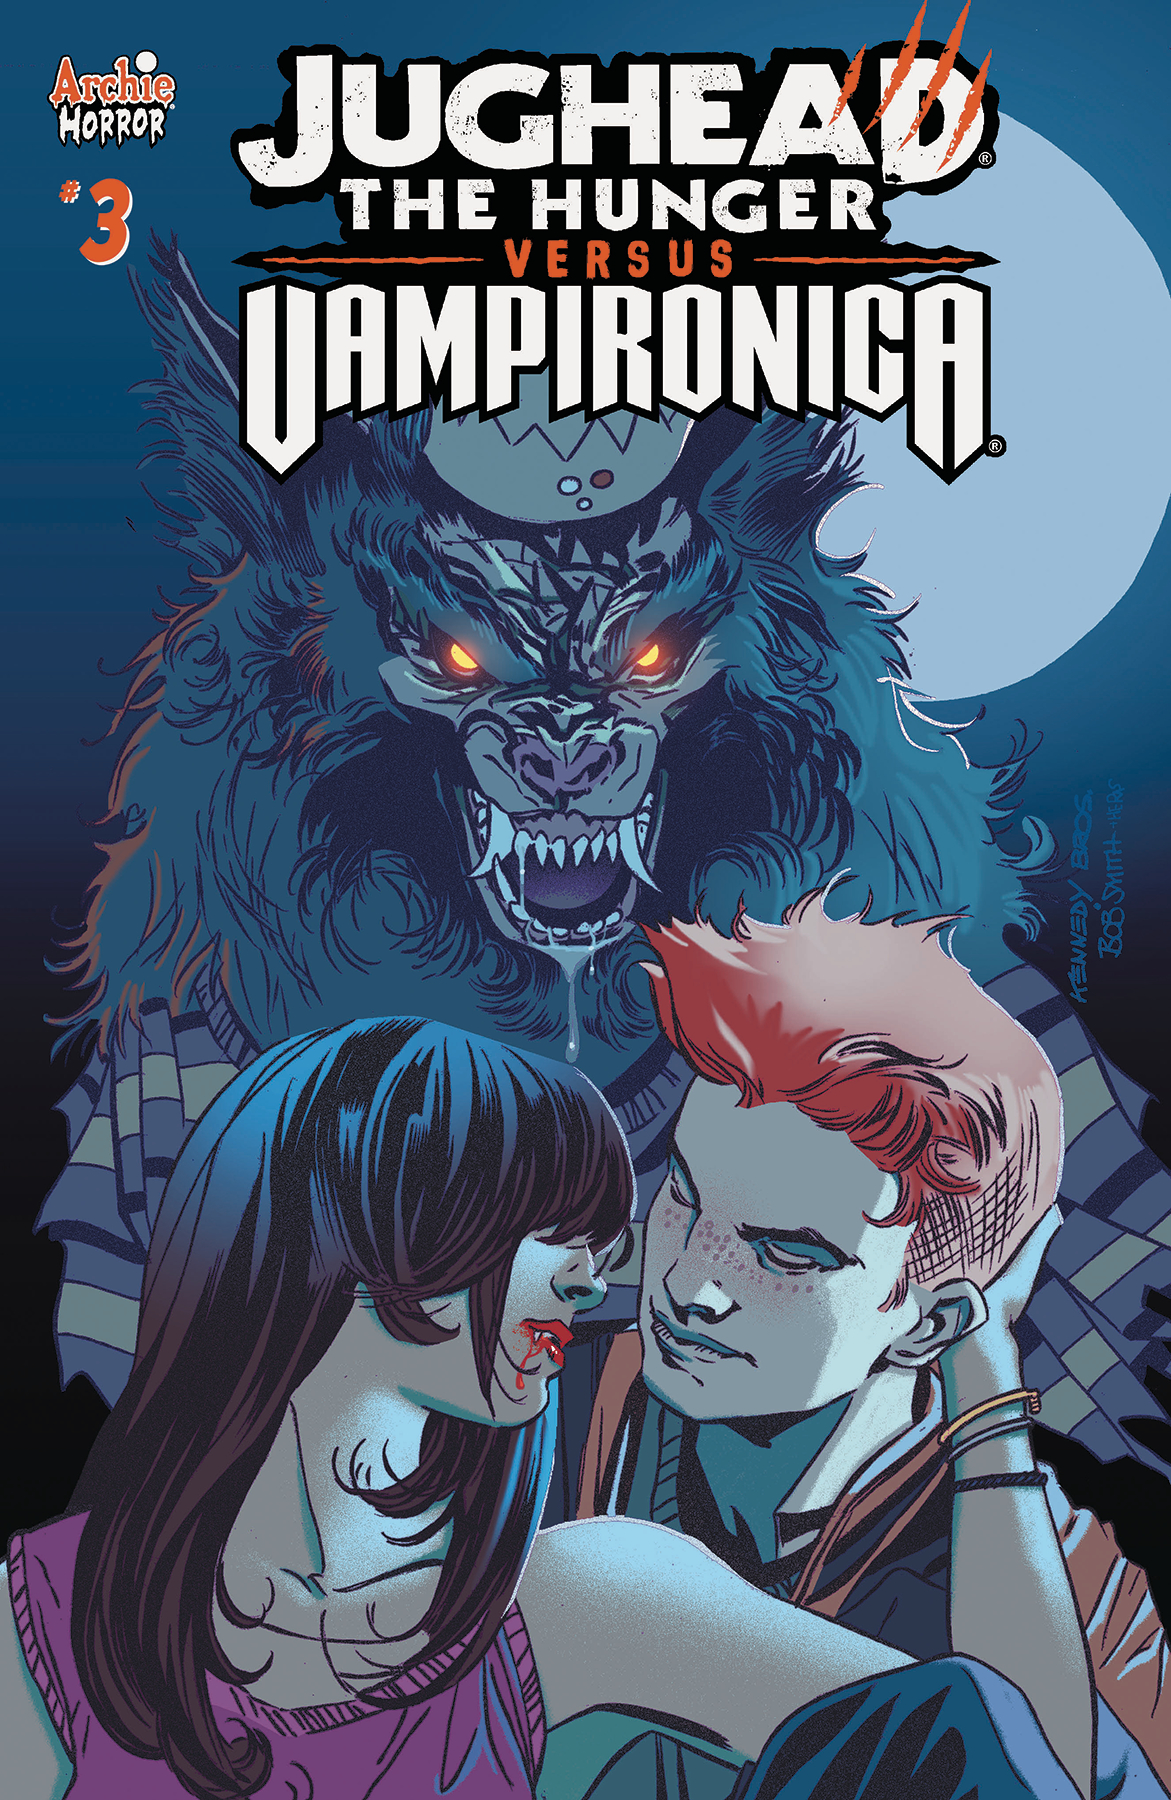 JUGHEAD HUNGER VS VAMPIRONICA #3 CVR A PAT & TIM KENNEDY (MR